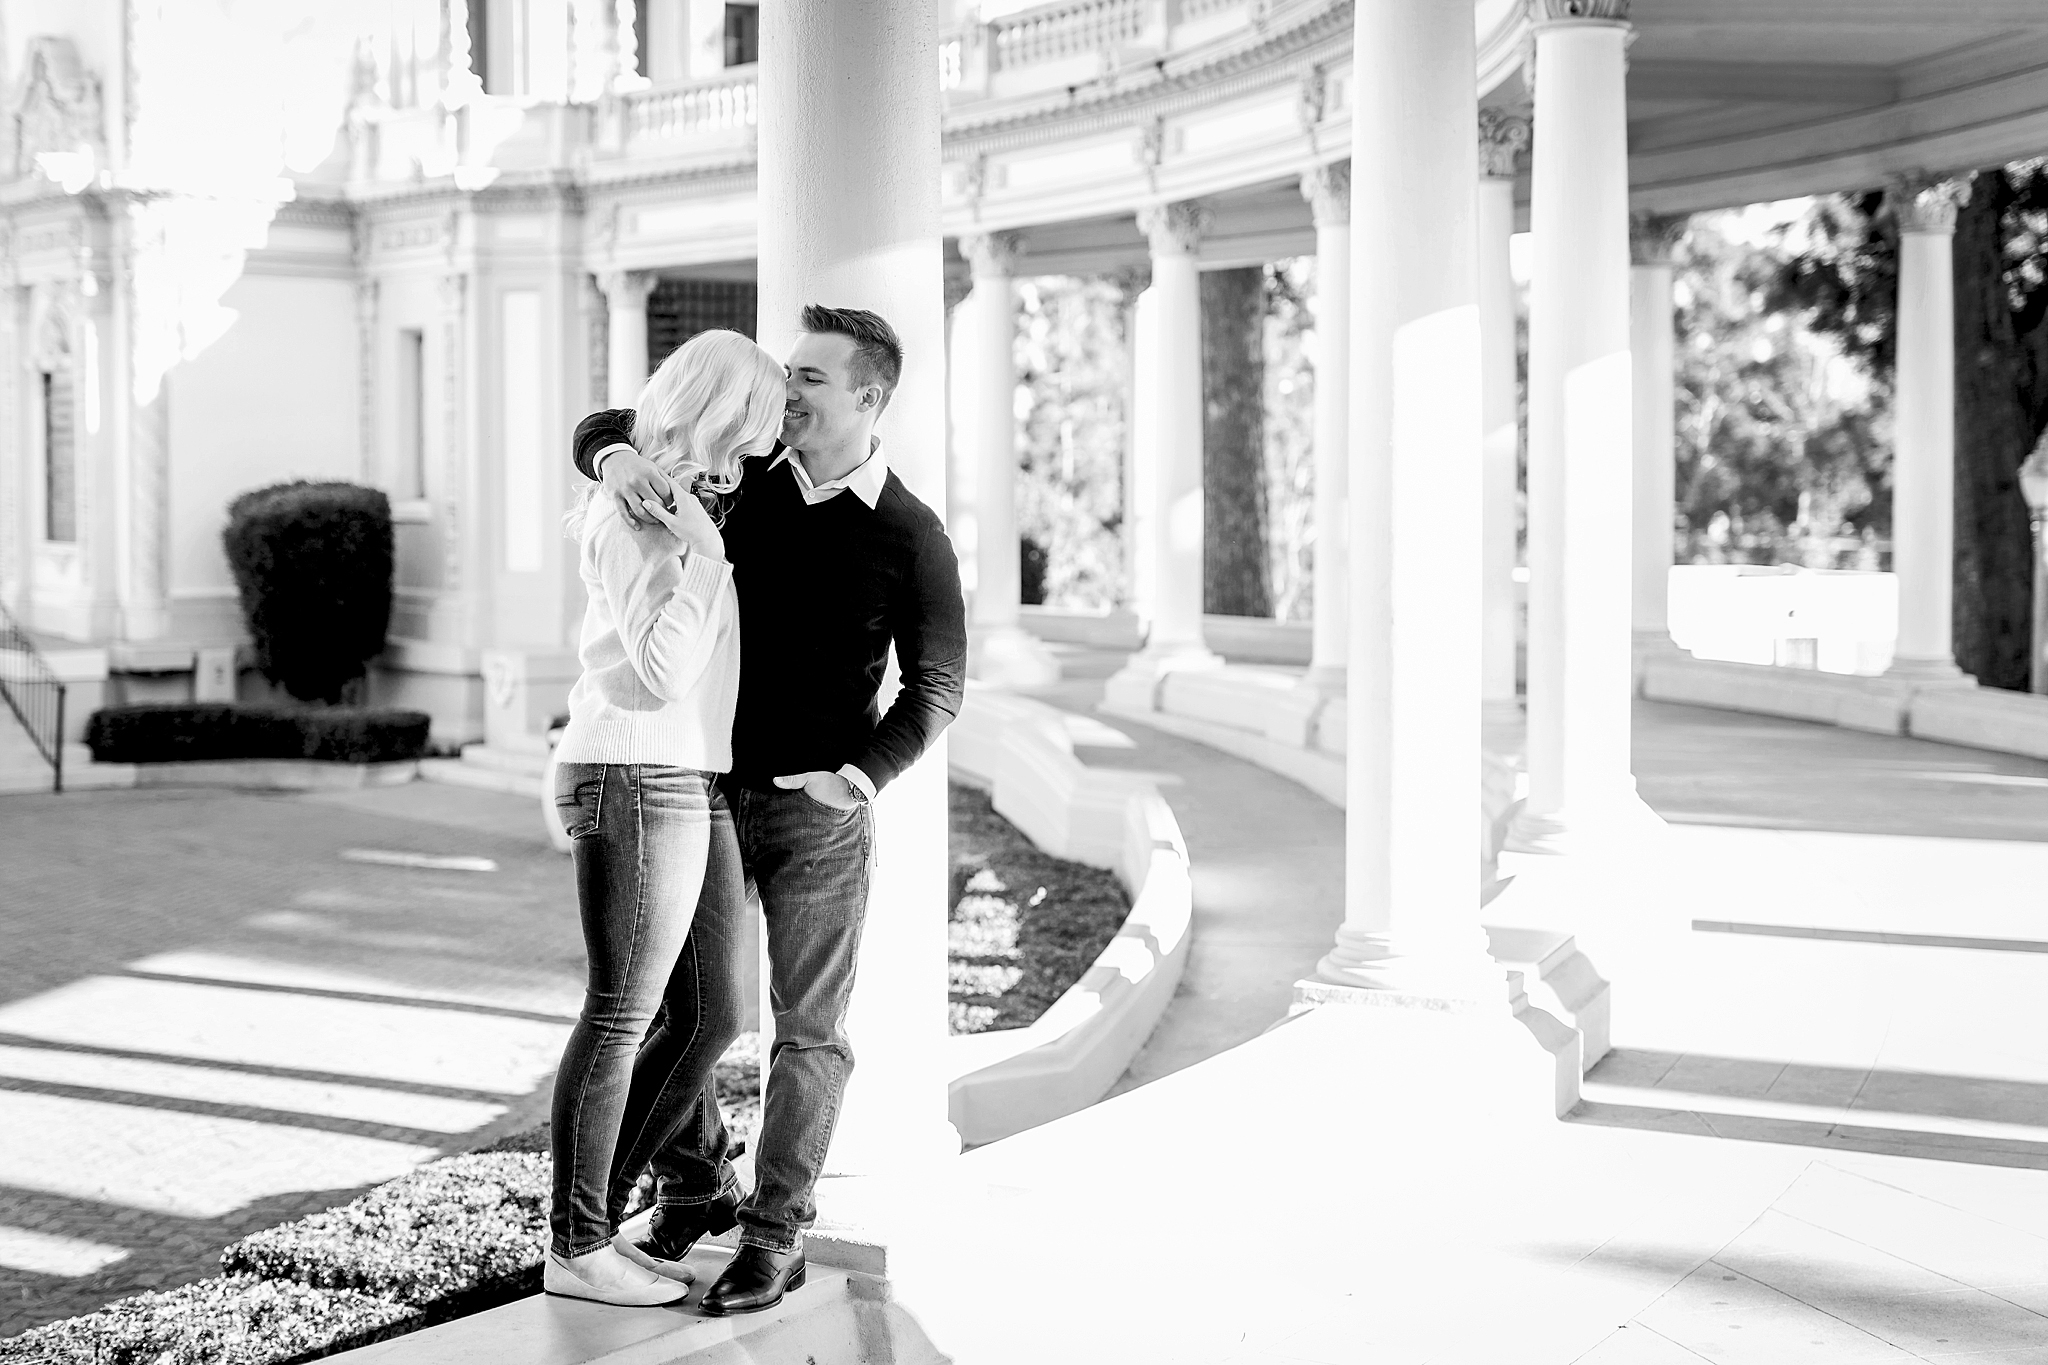 Cora and Zach take on Balboa park in San Diego for their engagement session. Here they are back lit by the golden hour sun at the Spreckels Organ Pavillion.